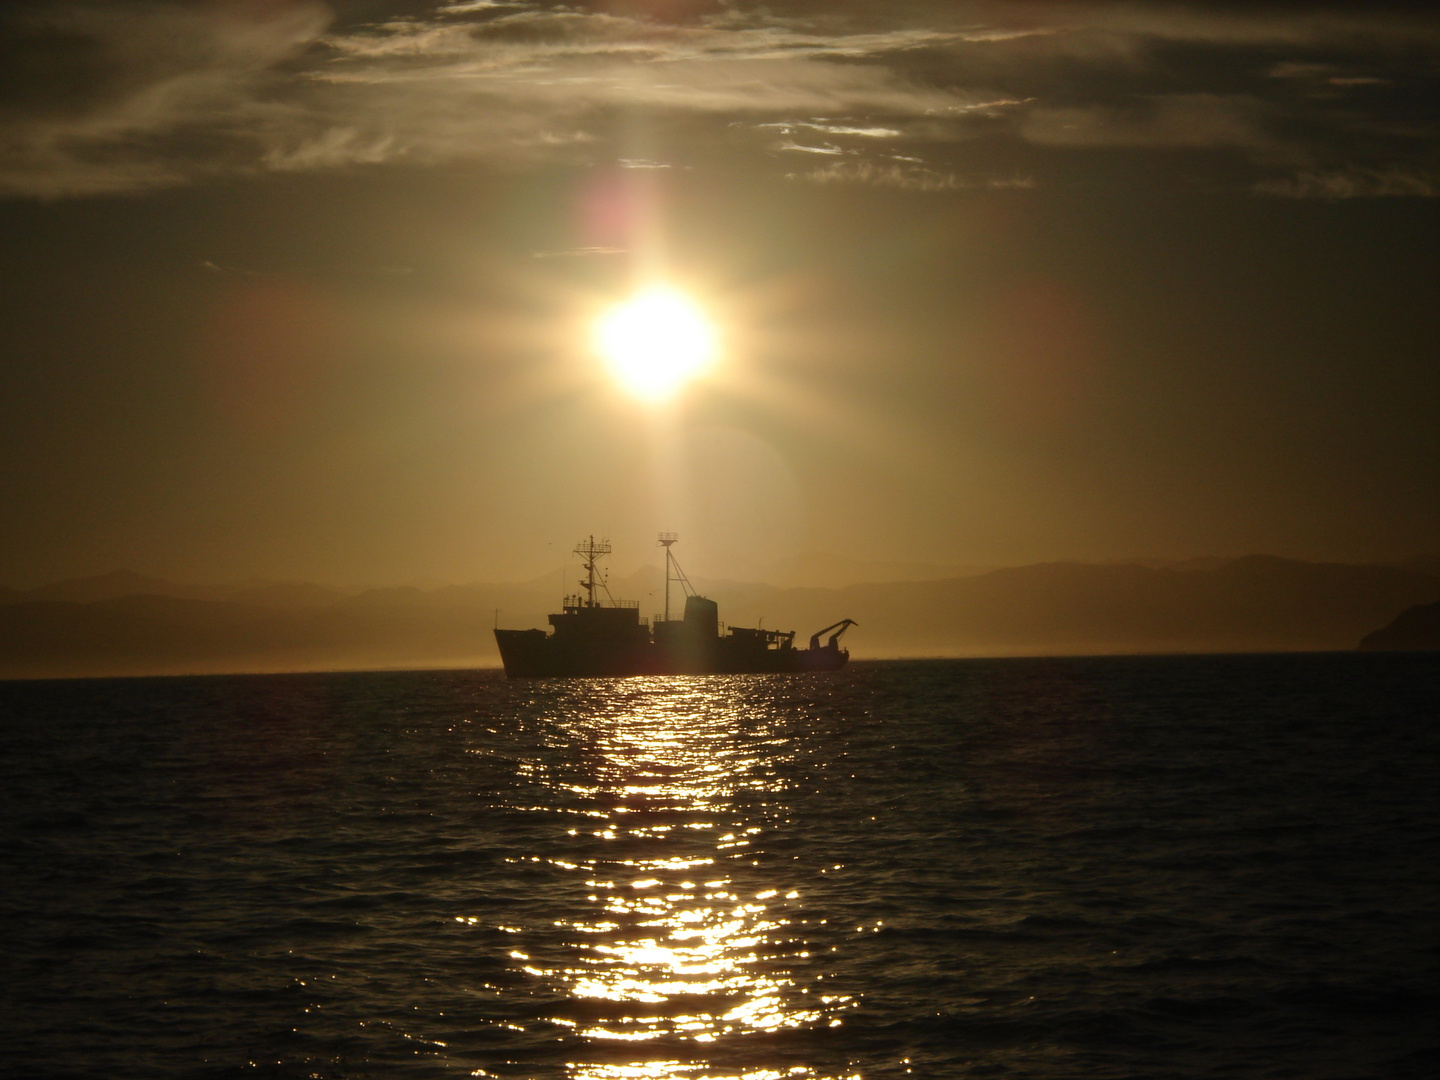 Sunrise in the Pacific...